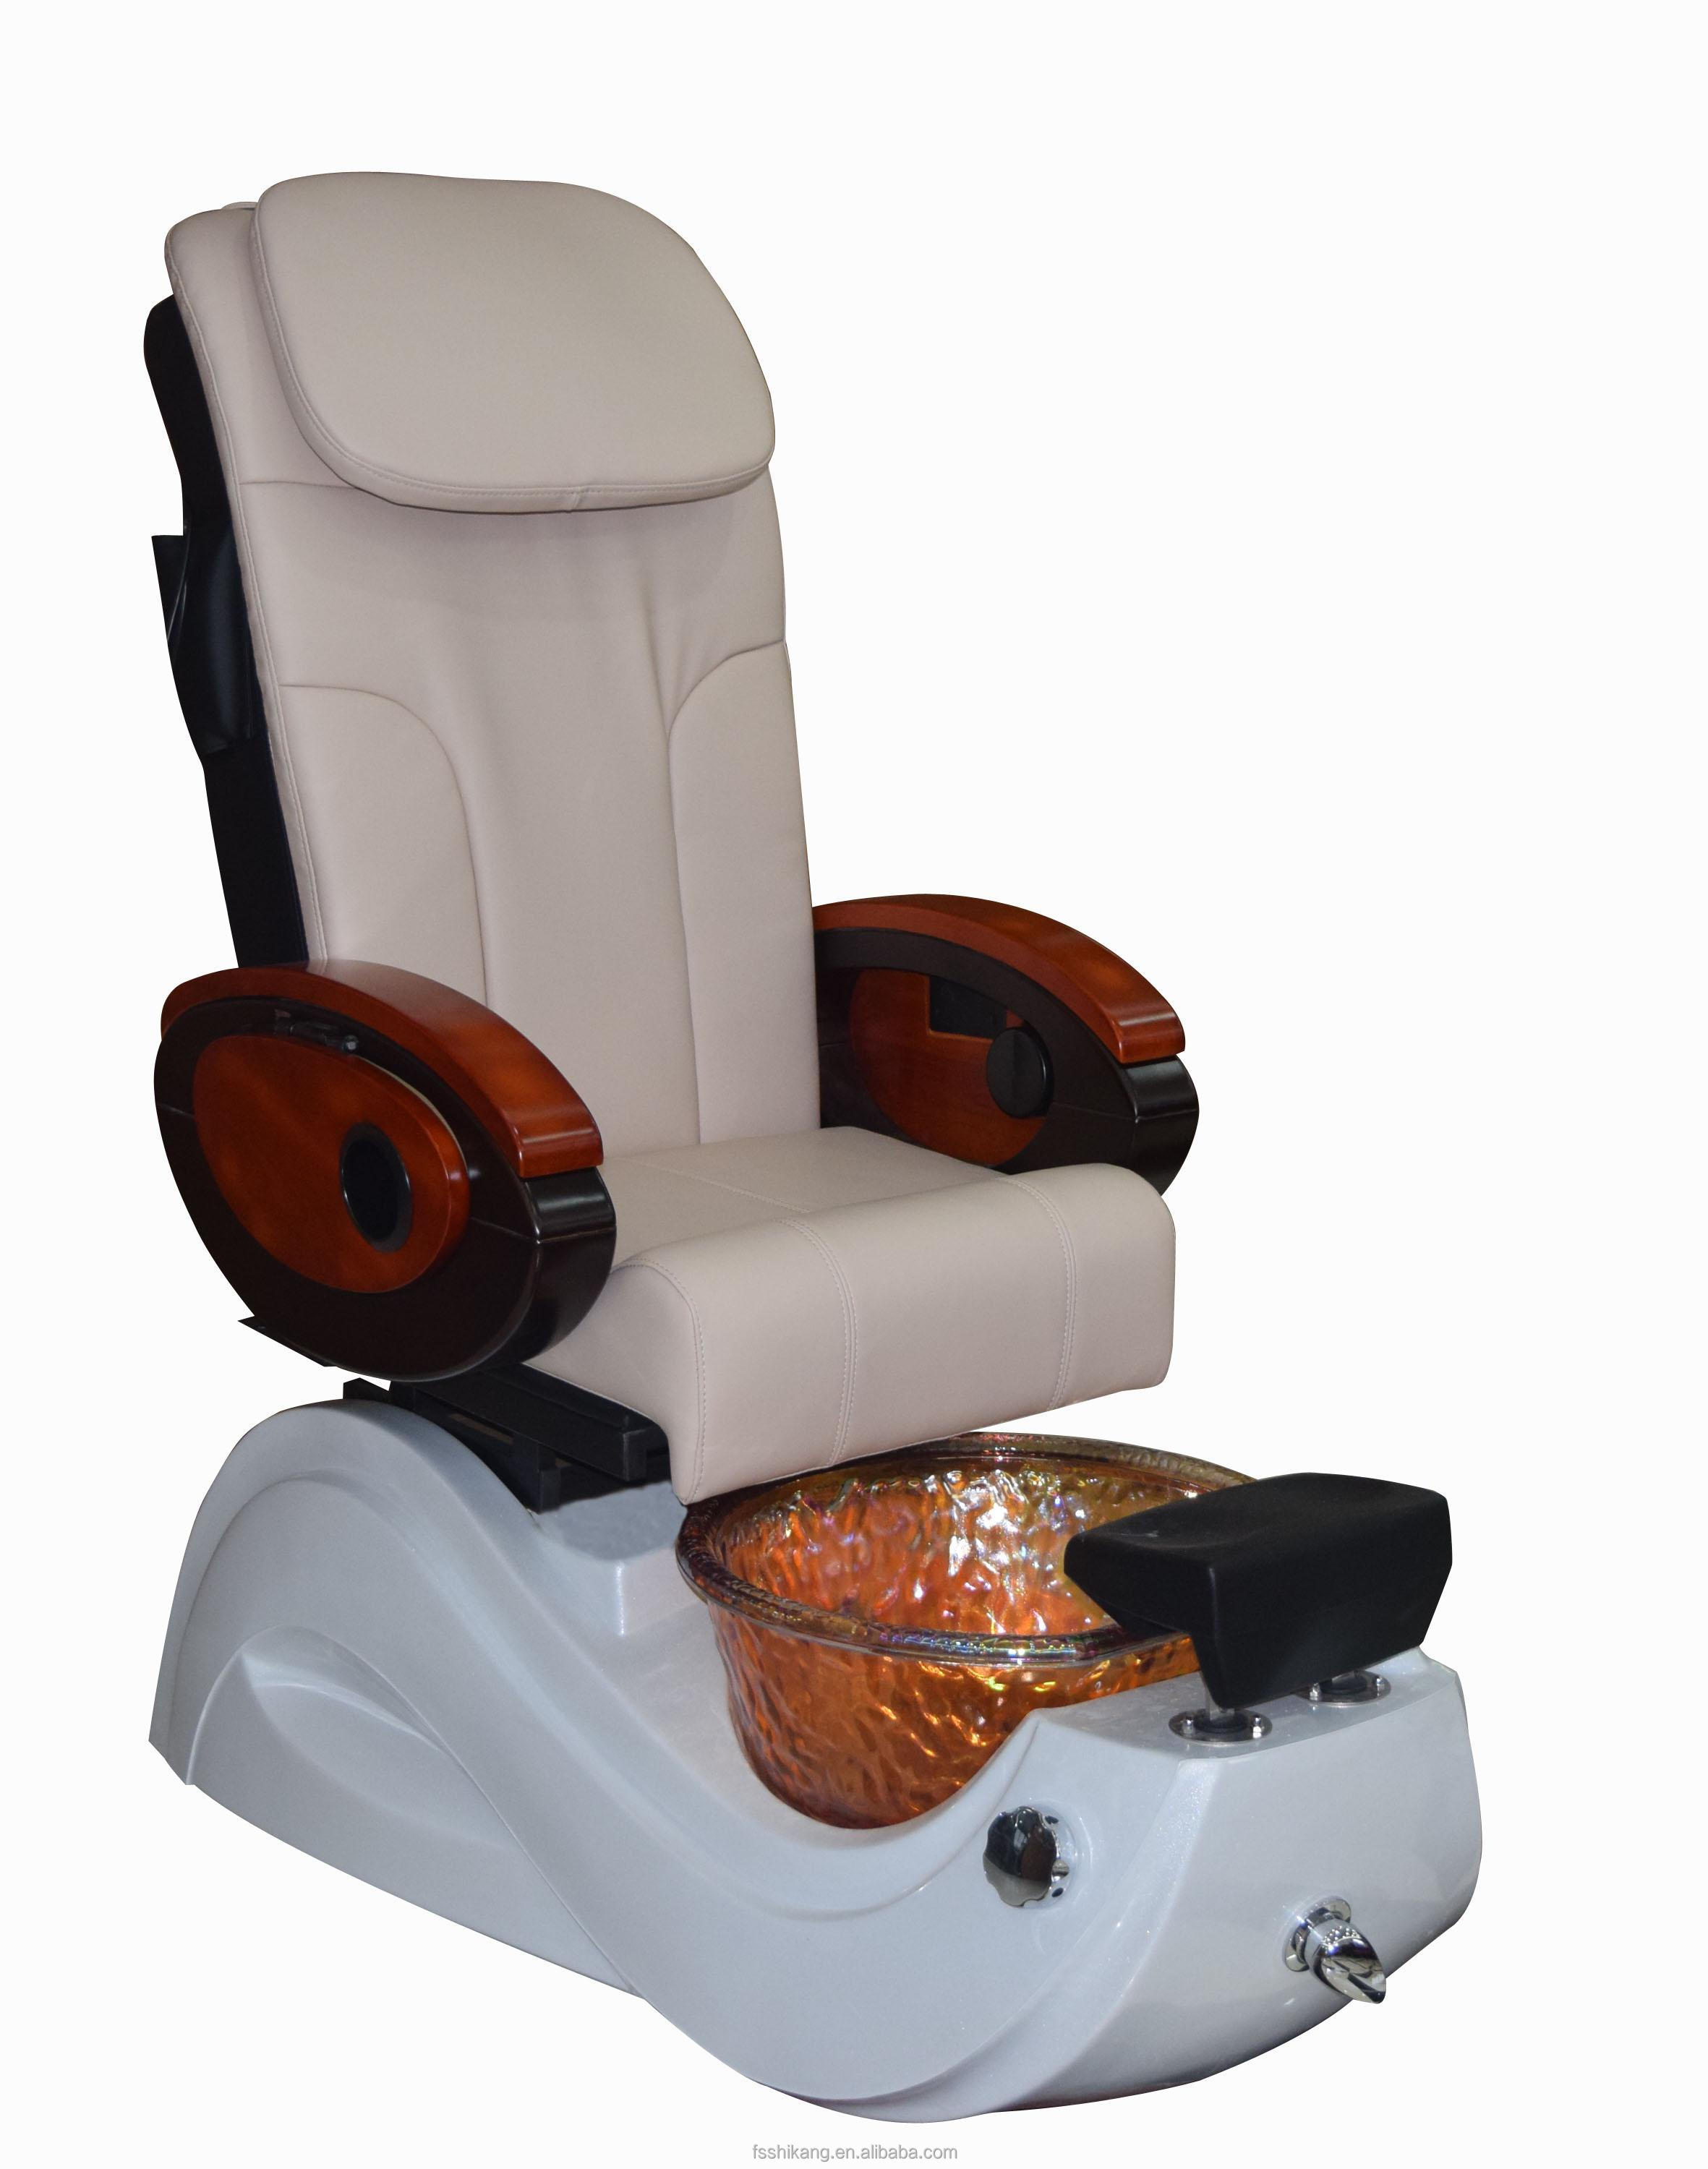 Human Touch Pedicure Chairs Human Touch Pedicure Chairs Suppliers